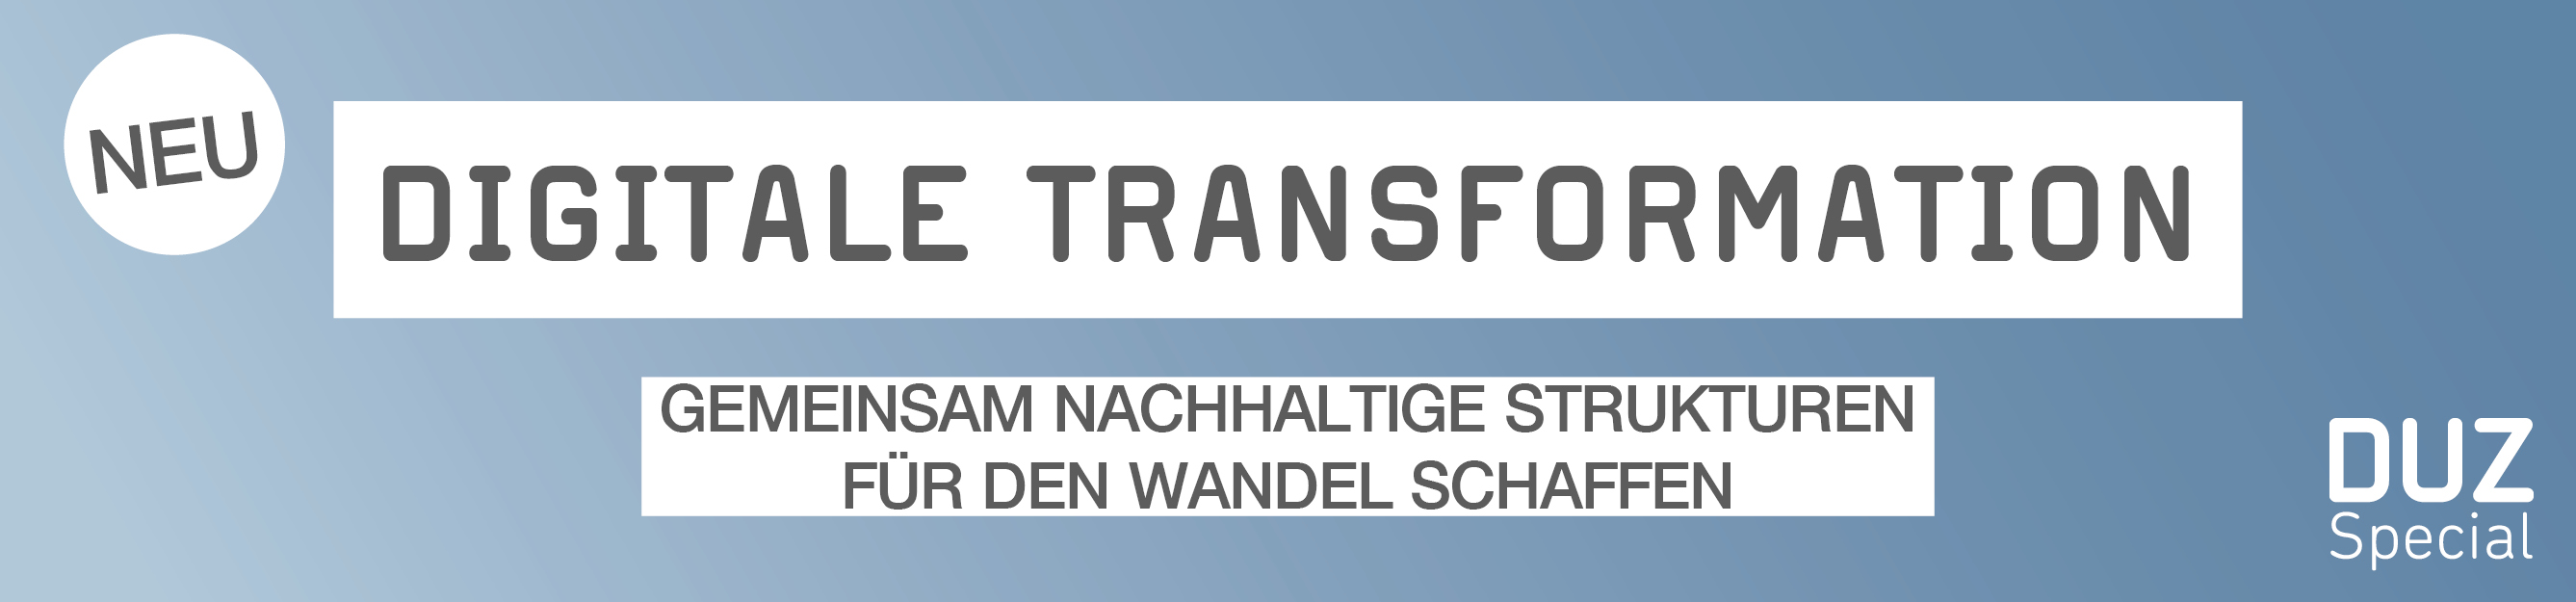 https://kiosk.duz.de/de/profiles/6ab48de23d75-duz-medienhaus-kiosk/editions/digitale-transformation/pages